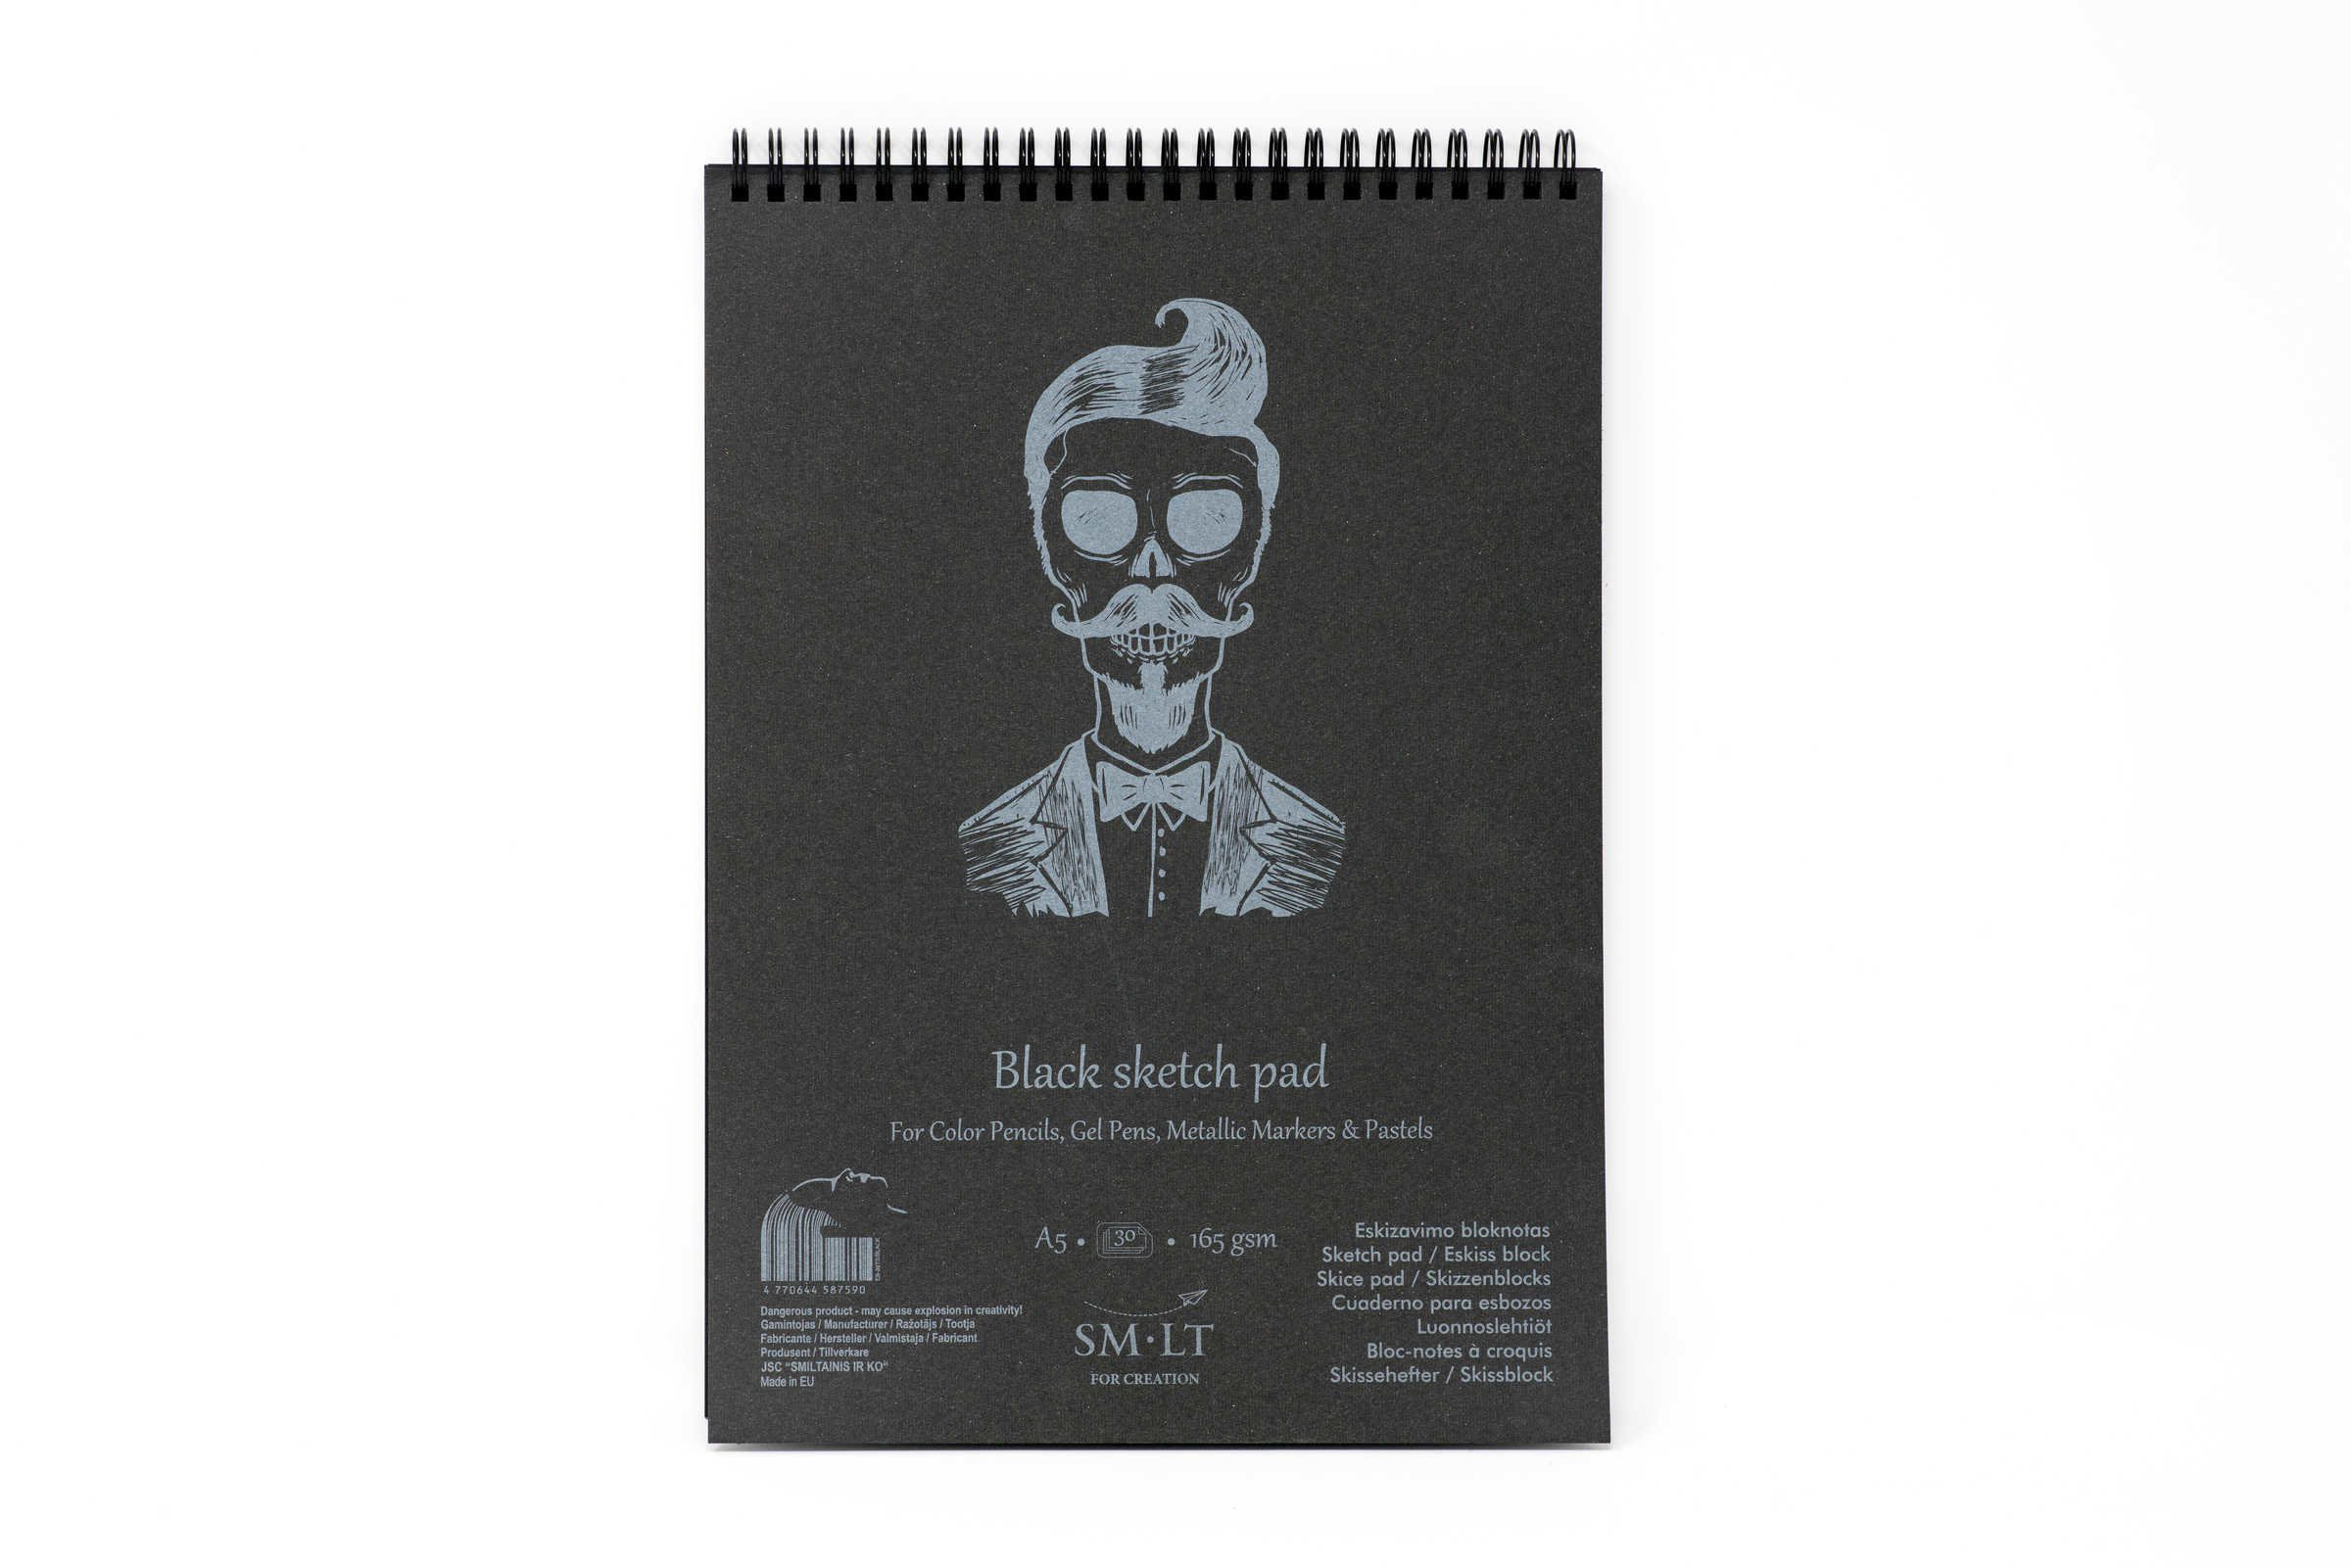 Скетчбук SKETCH PAD BLACK 165г/кв.м (А5) 148х210мм 30л. спираль по 405.00 руб от SM-LT